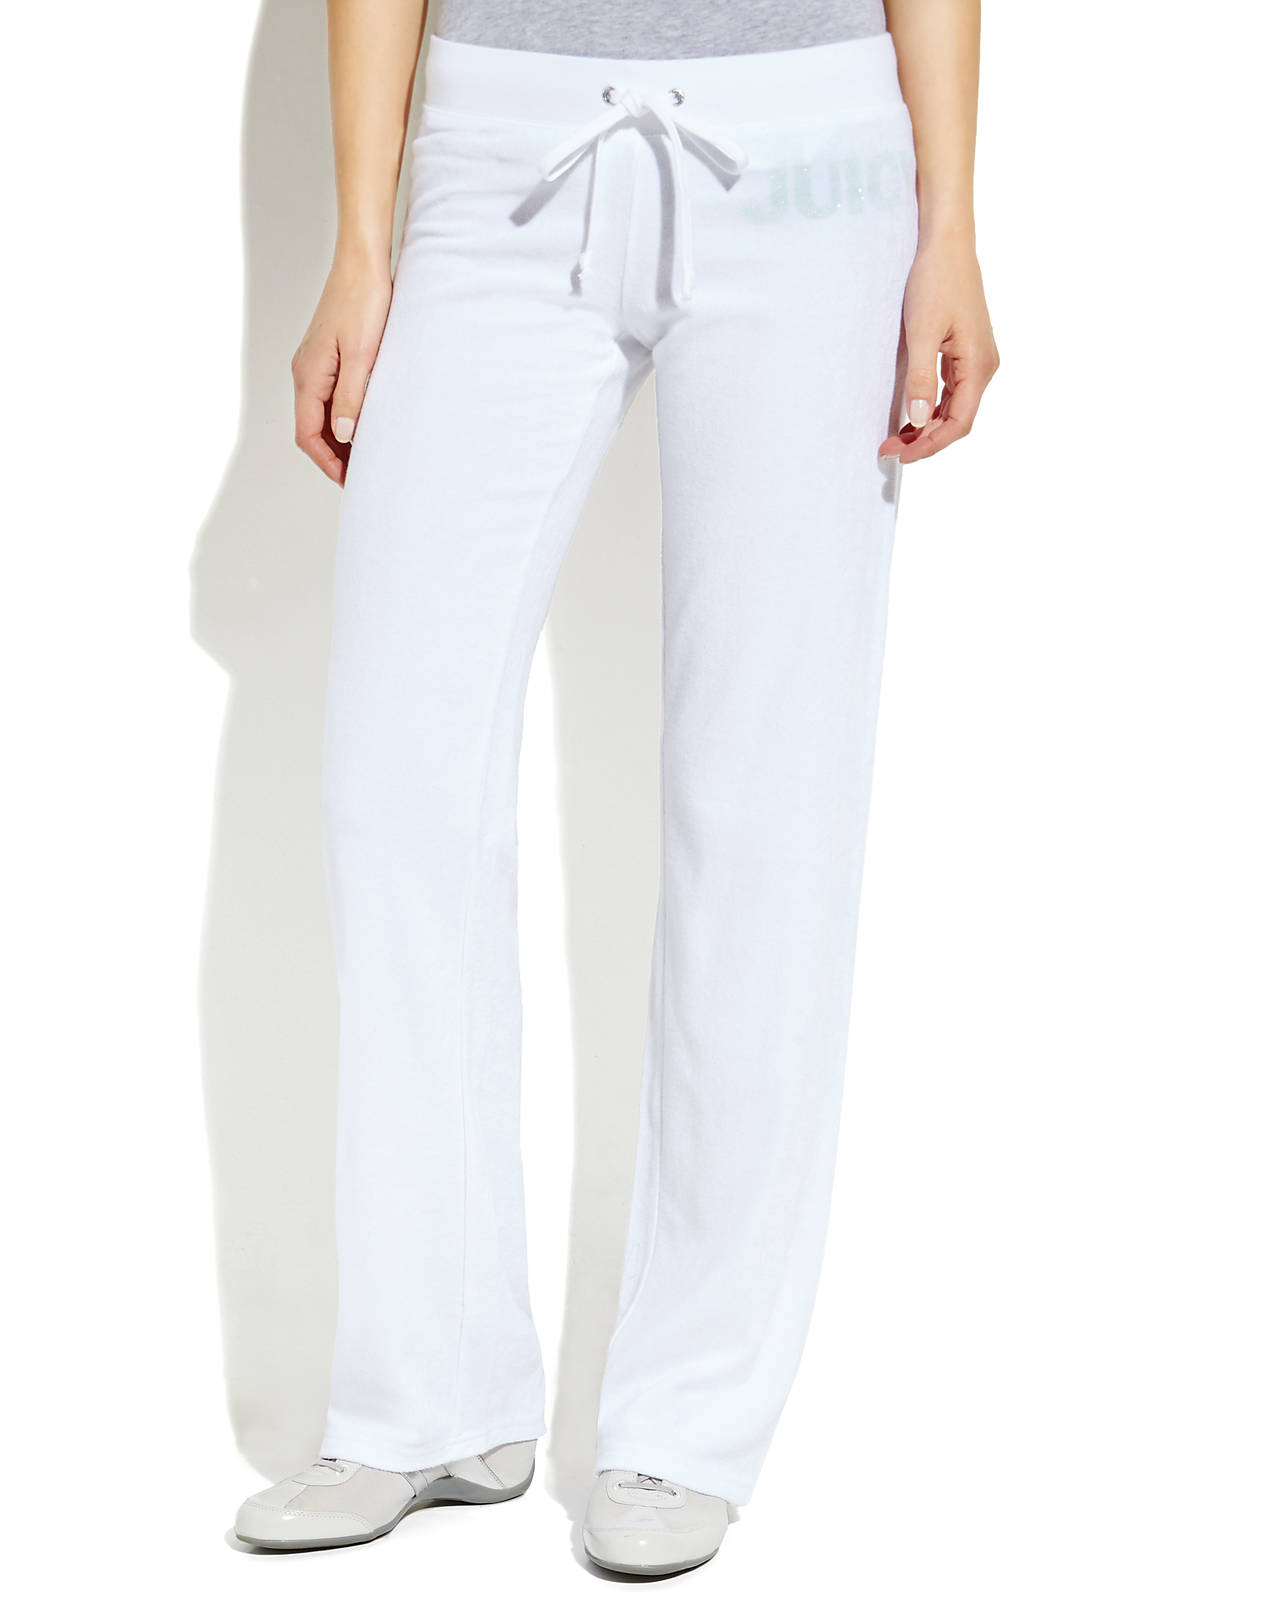 Lyst - Juicy Couture Repeat Terry Cloth Pants in White 2d1ae6a0a513